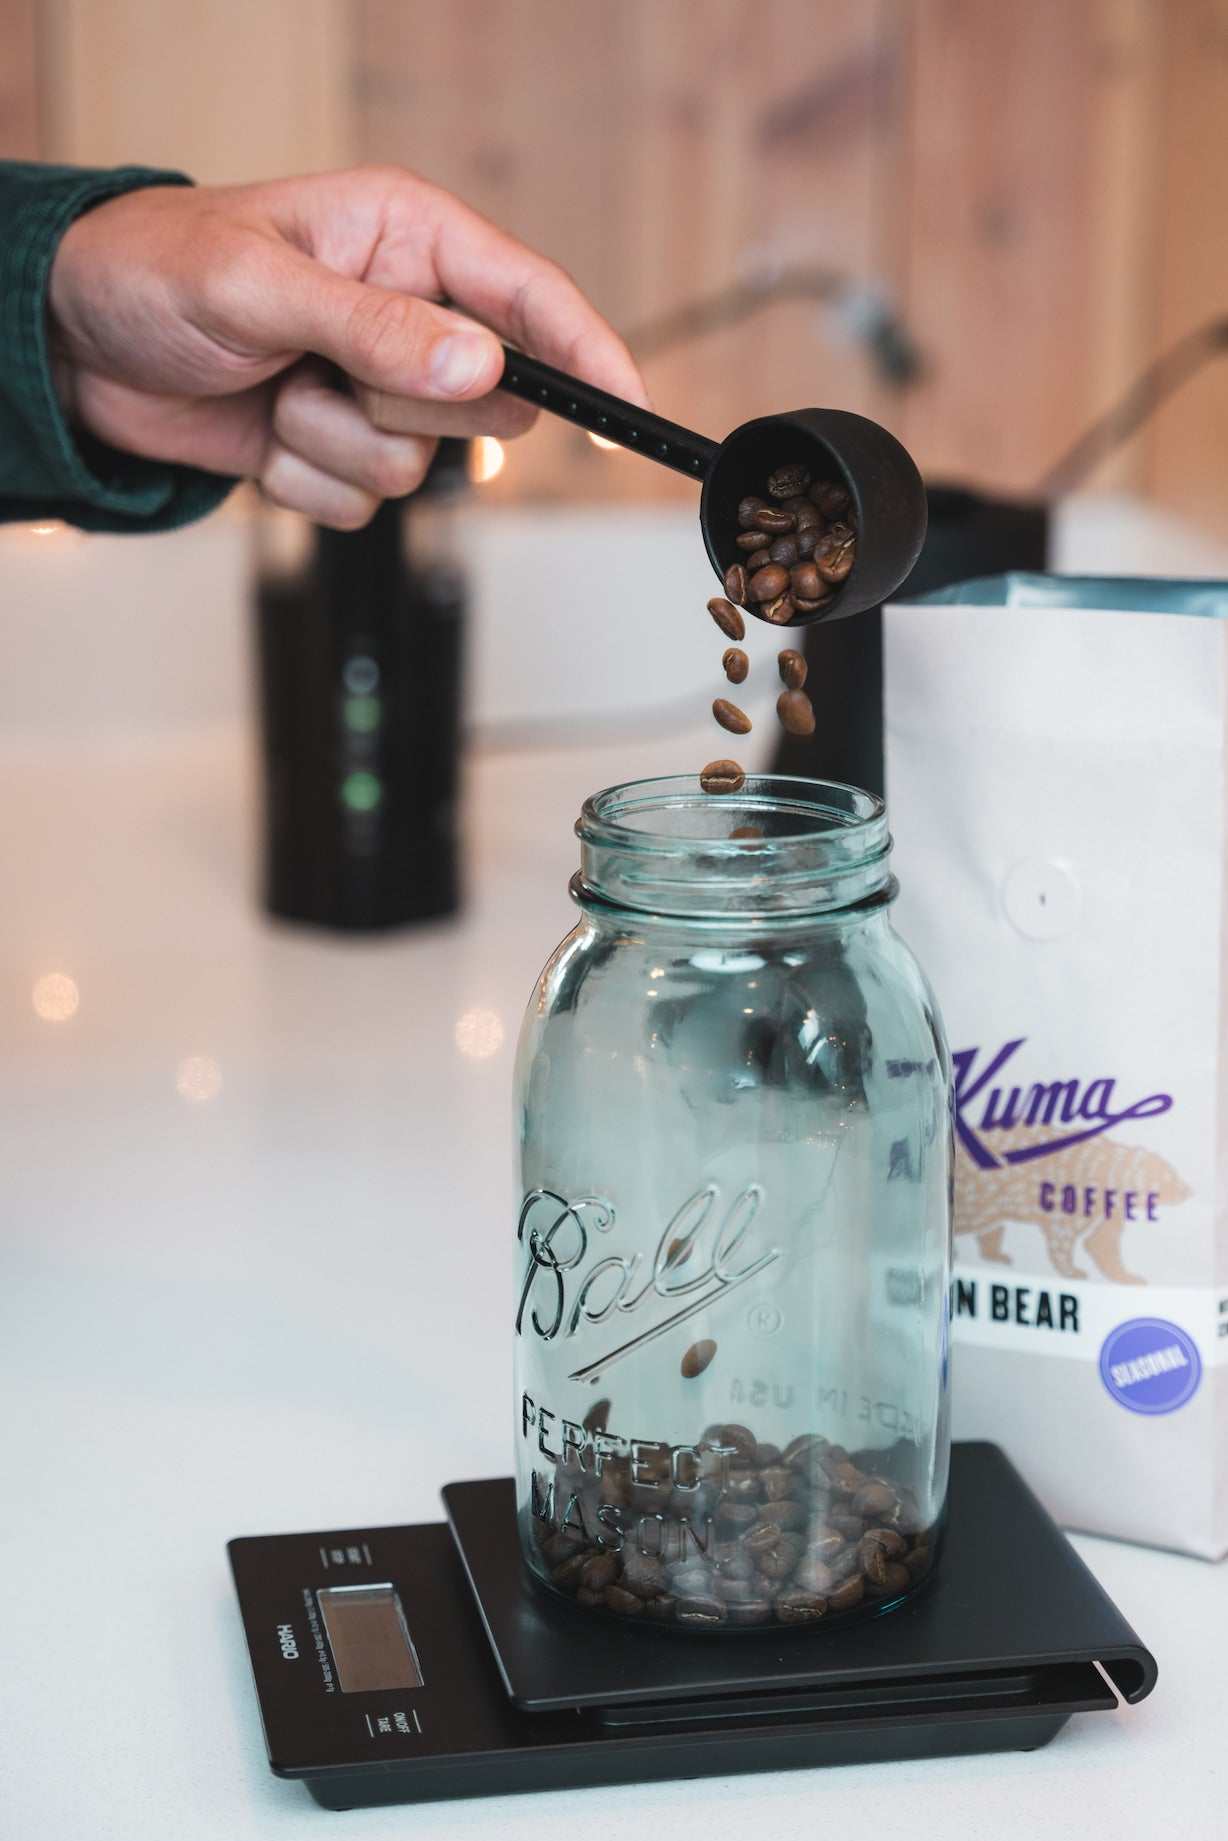 Weighing and scooping Sun Bear Blend roasted by Kuma Coffee into a mason jar to make cold brew